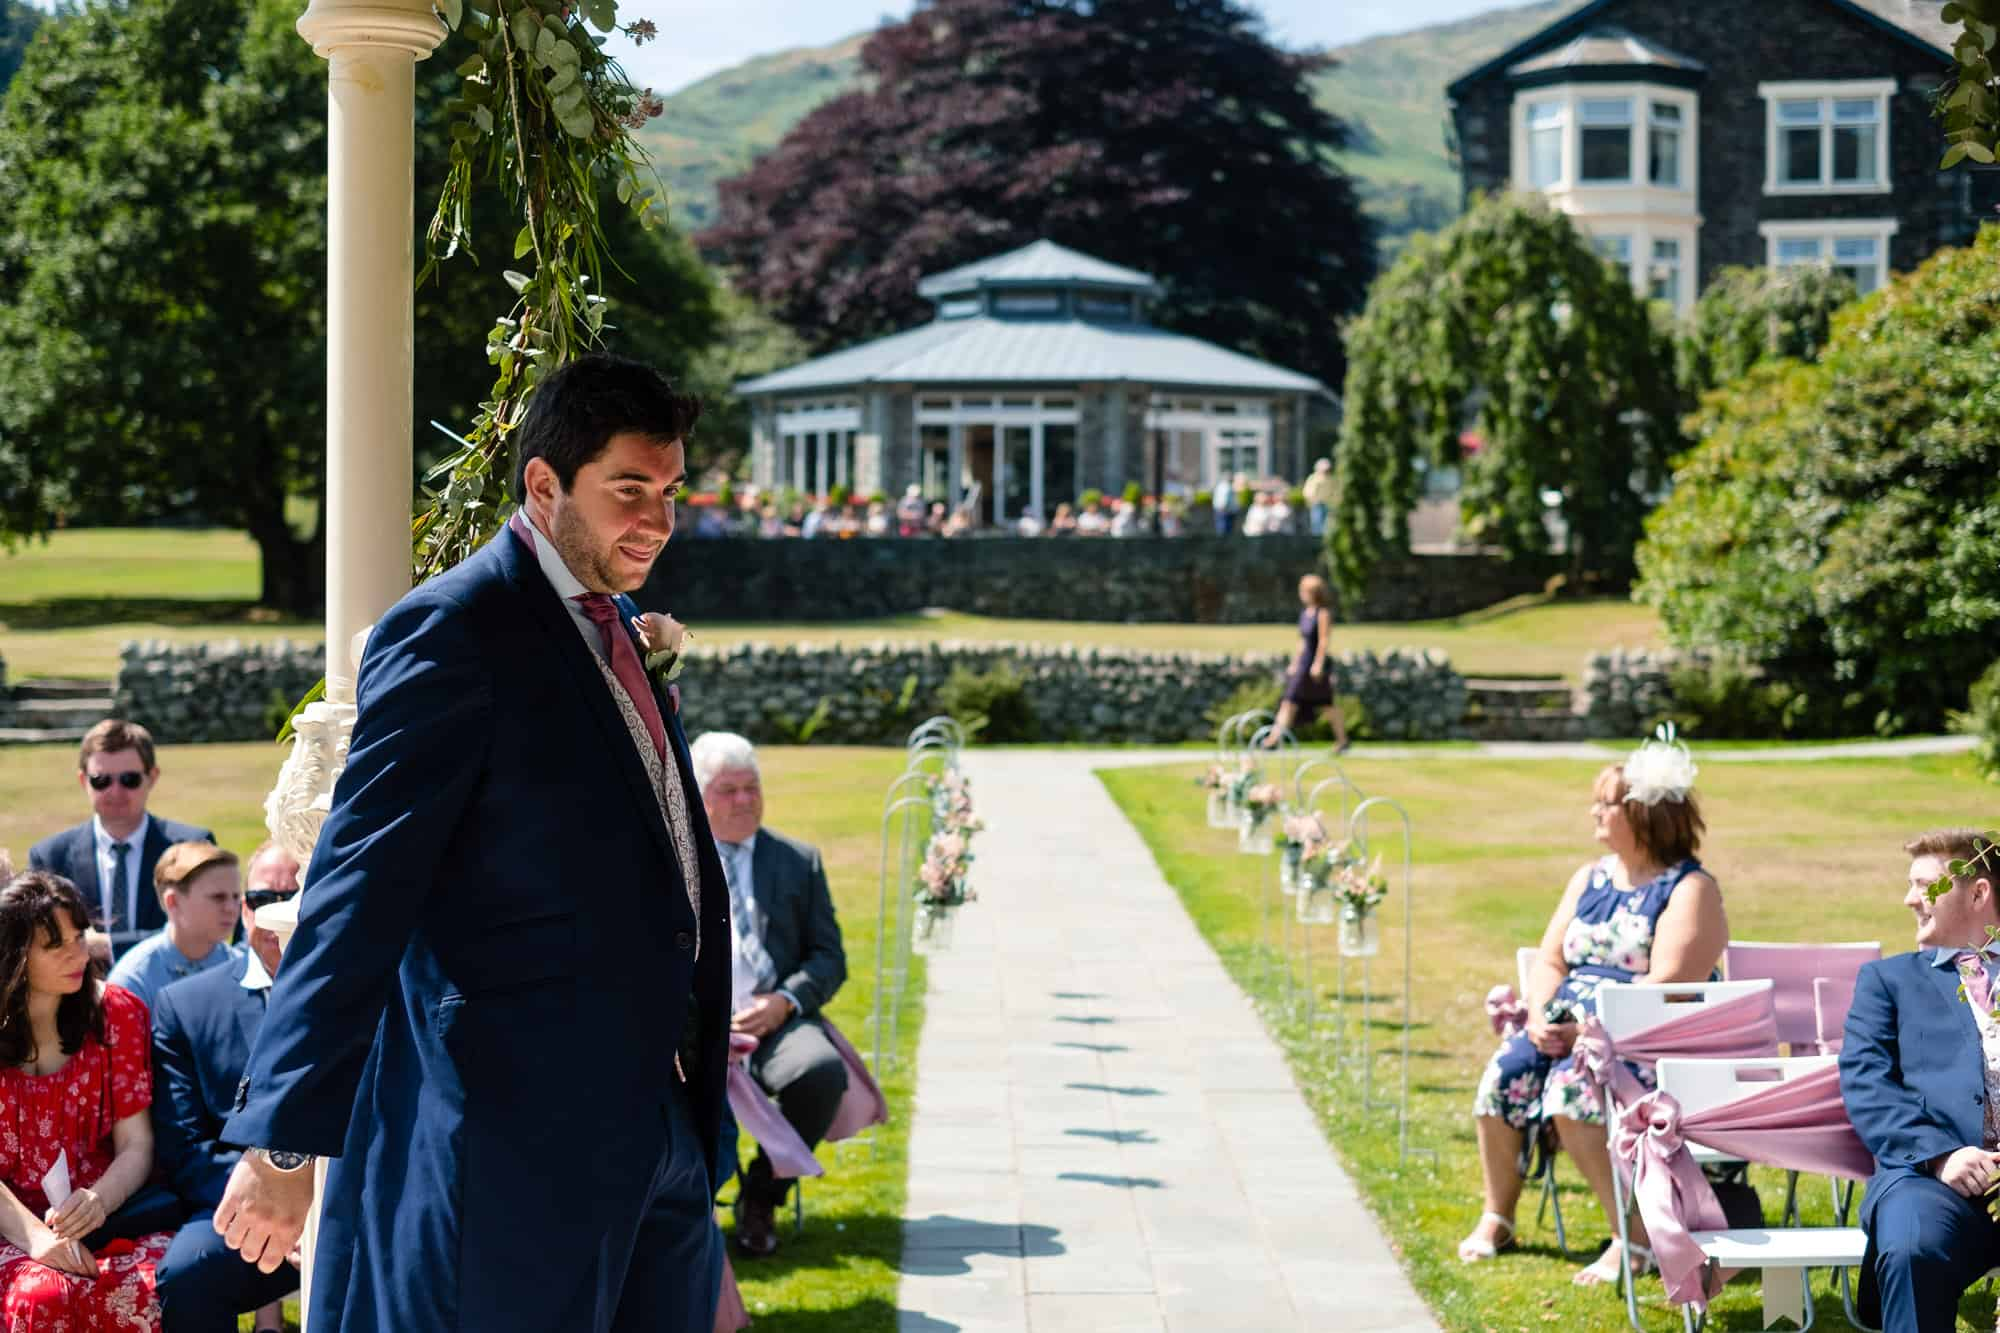 groom waiting under the gazebo for his bride to arrive